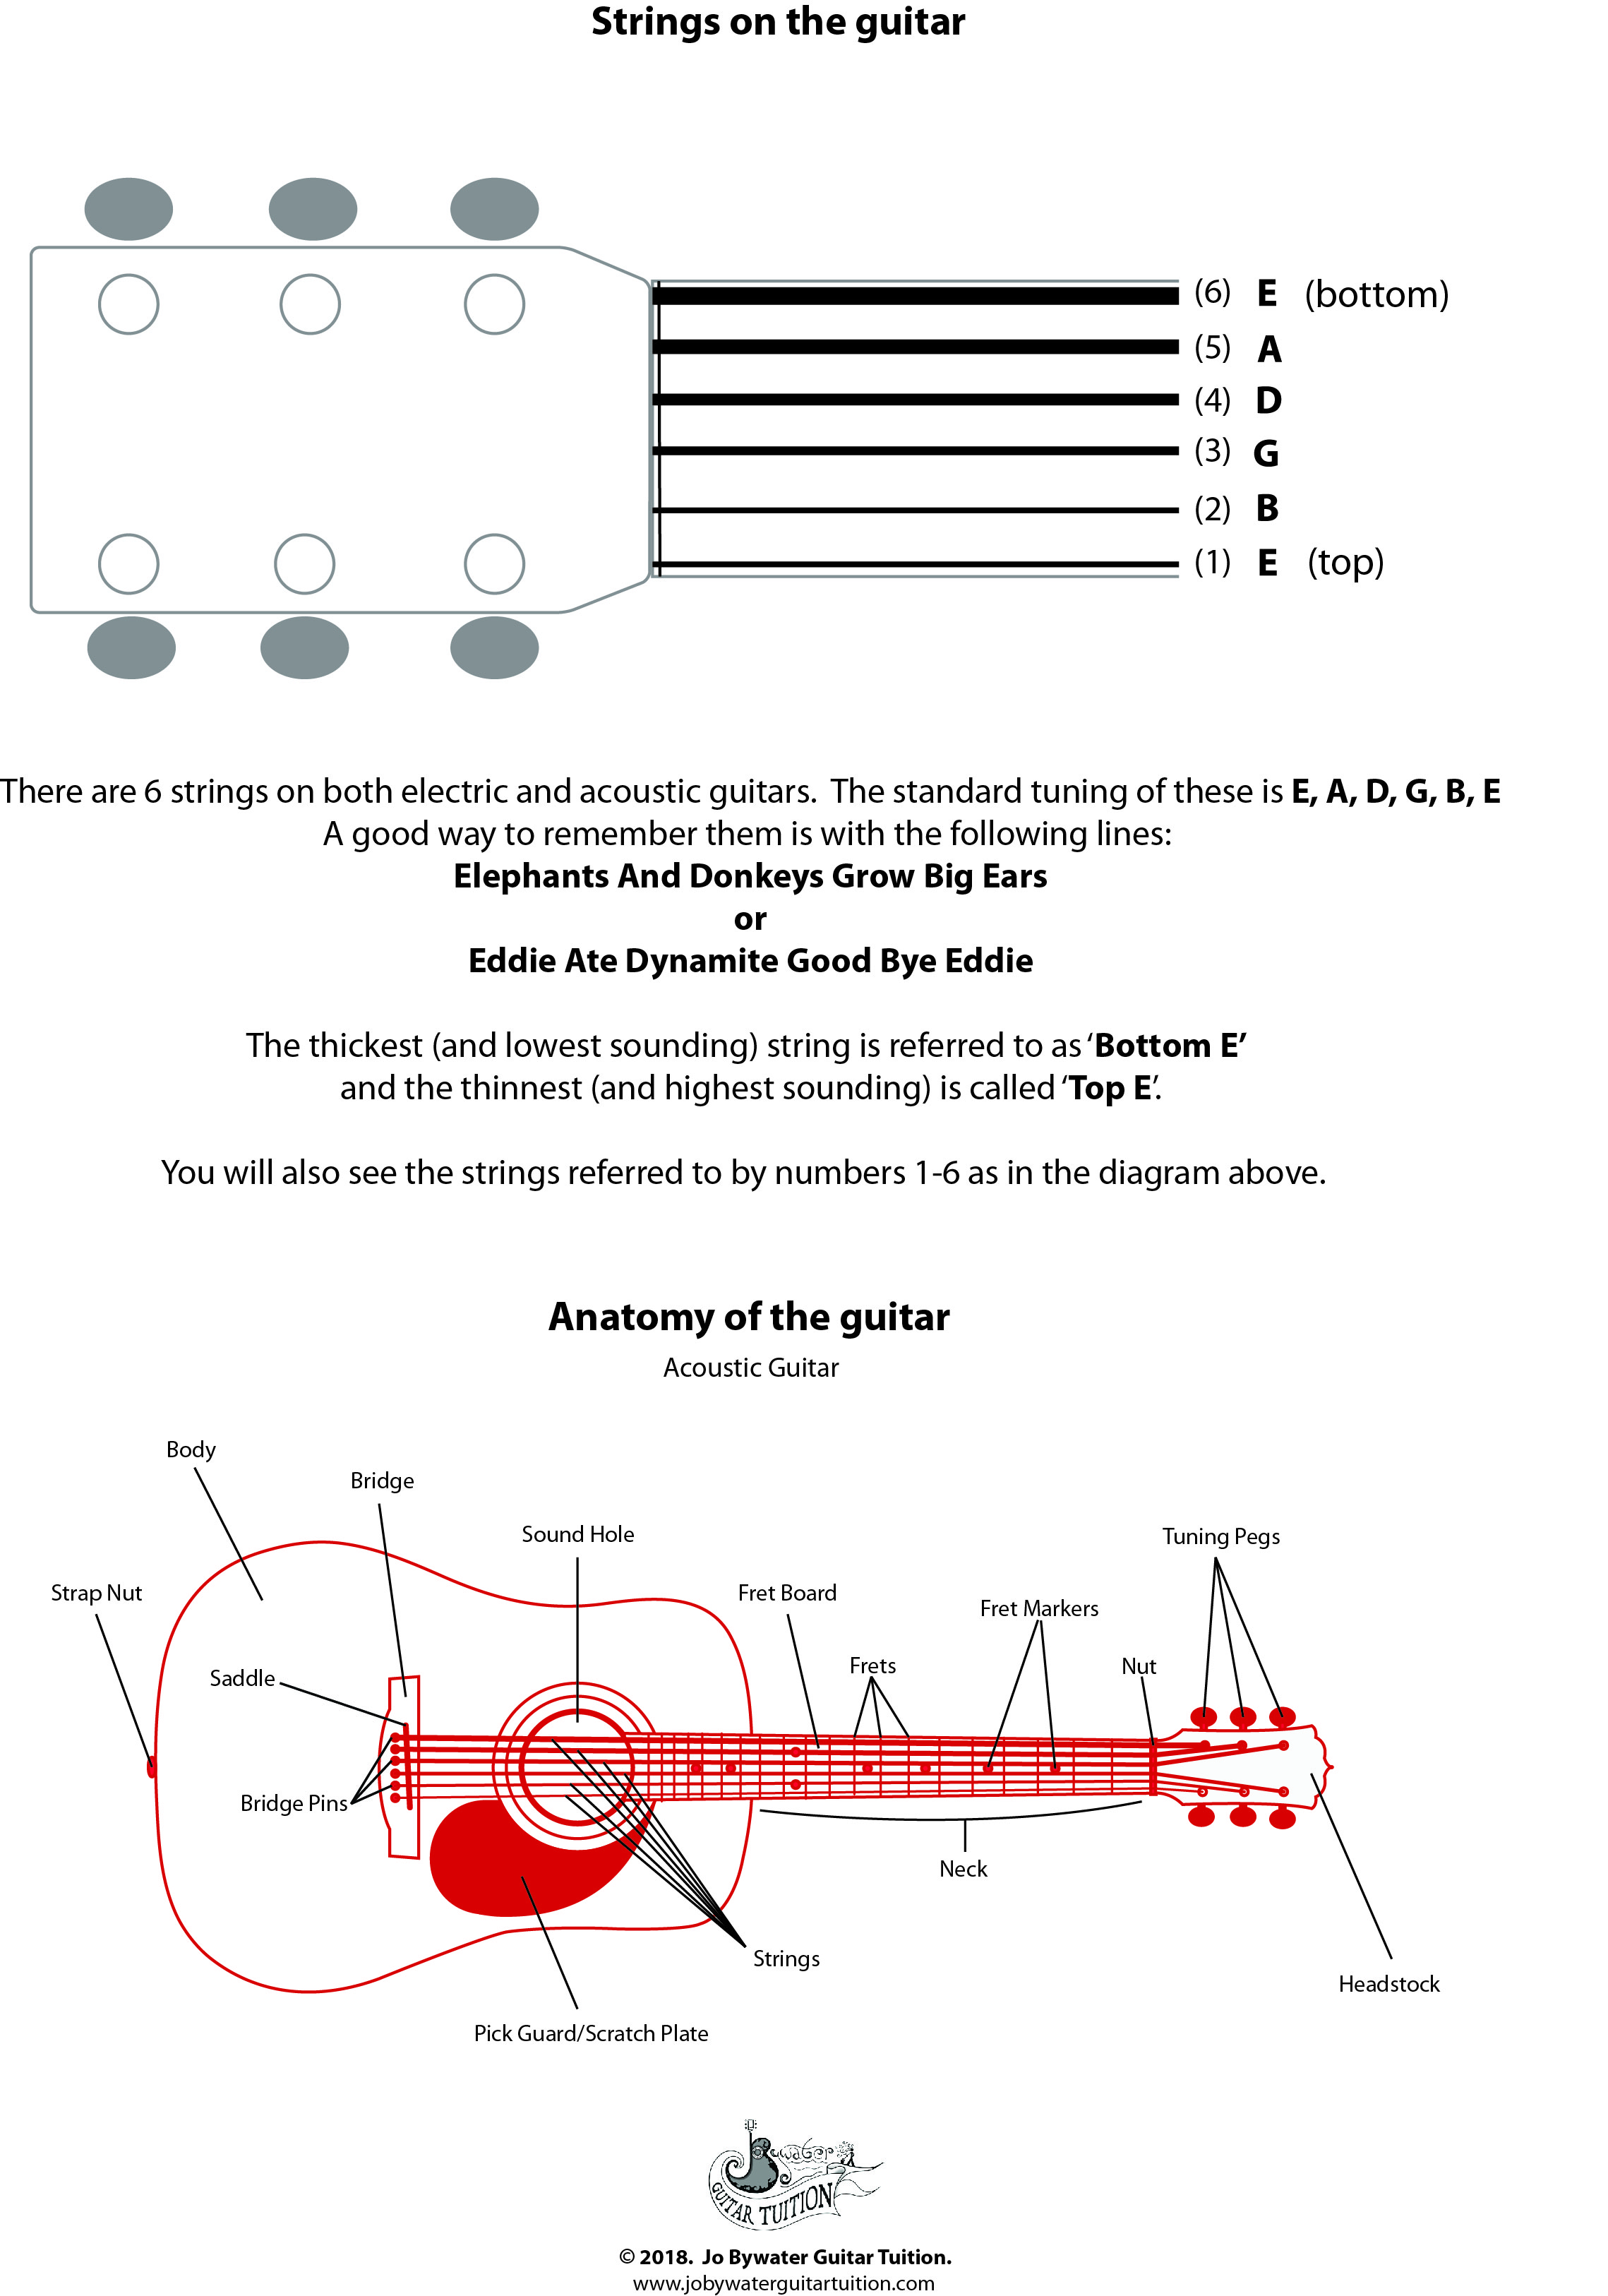 small resolution of free resources jo bywater guitar tuition acoustic guitar labelled diagram jo bywater guitar tuition